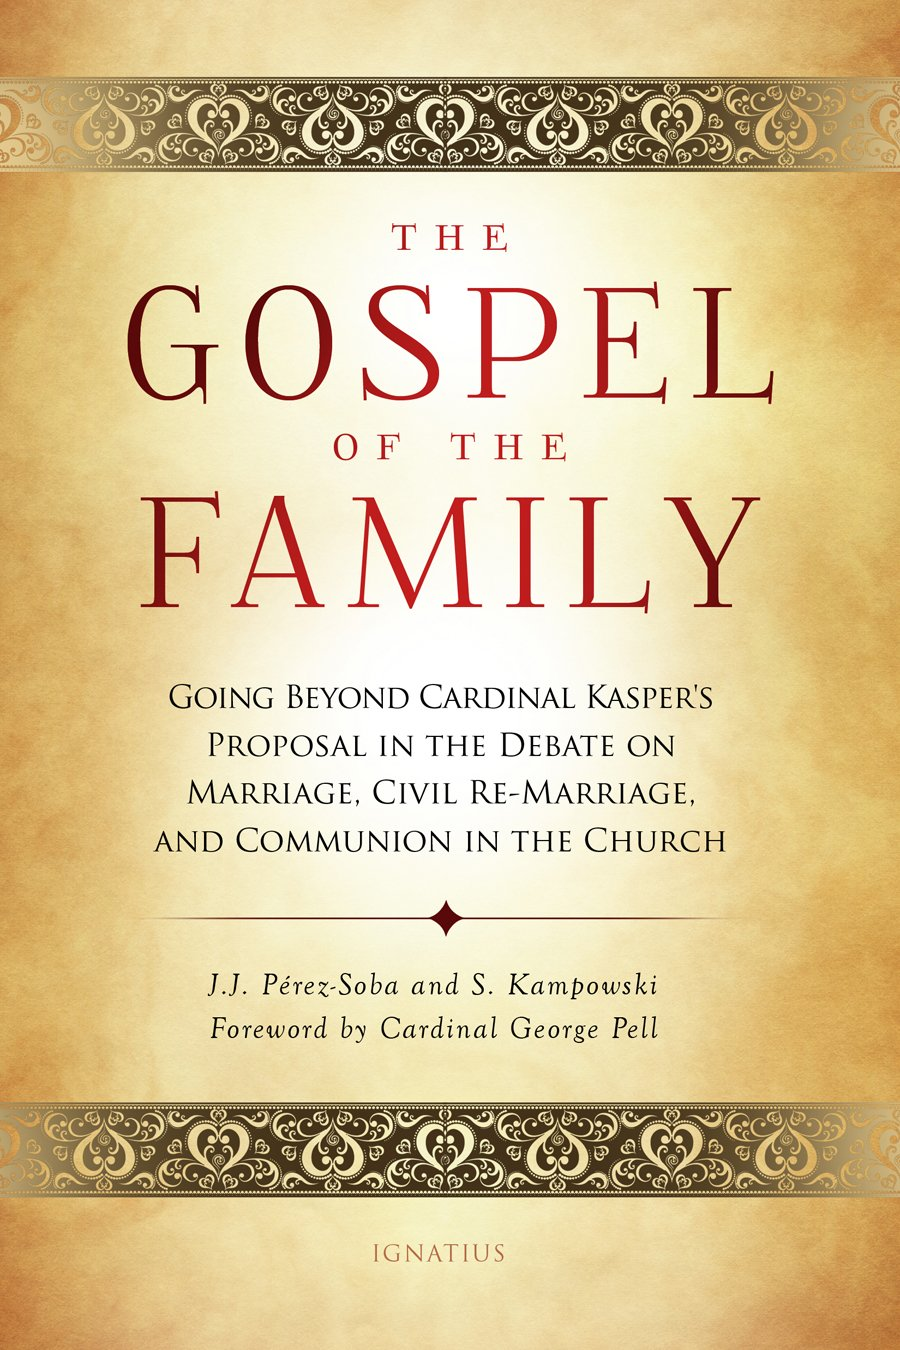 The Gospel of the Family: Going Beyond Cardinal Kasper's Proposal in the Debate on Marriage, Civil Re-Marriage and Communion in the Church pdf epub